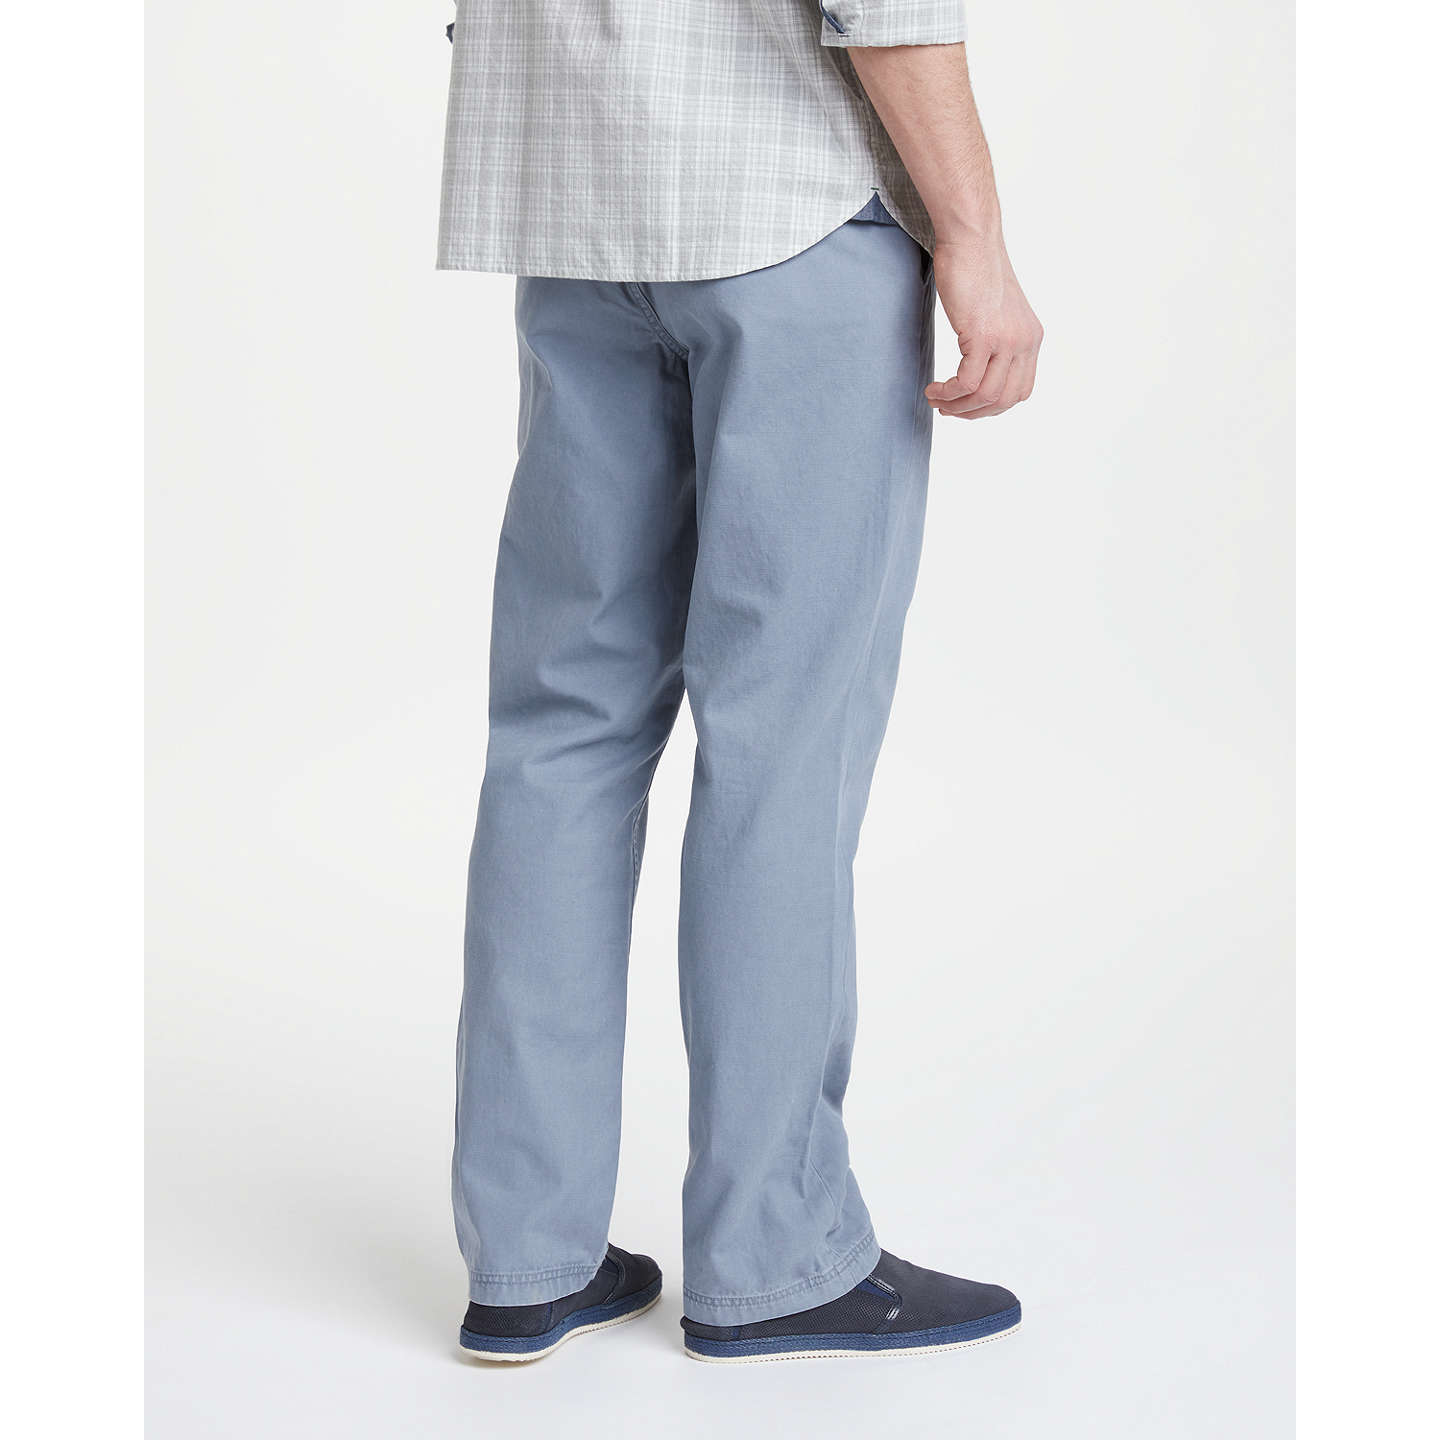 Outlet Cheap Chinos Edison grey-brown Closed Clearance For Cheap Visit Cheap Price Store Sale Popular v8kBalm994